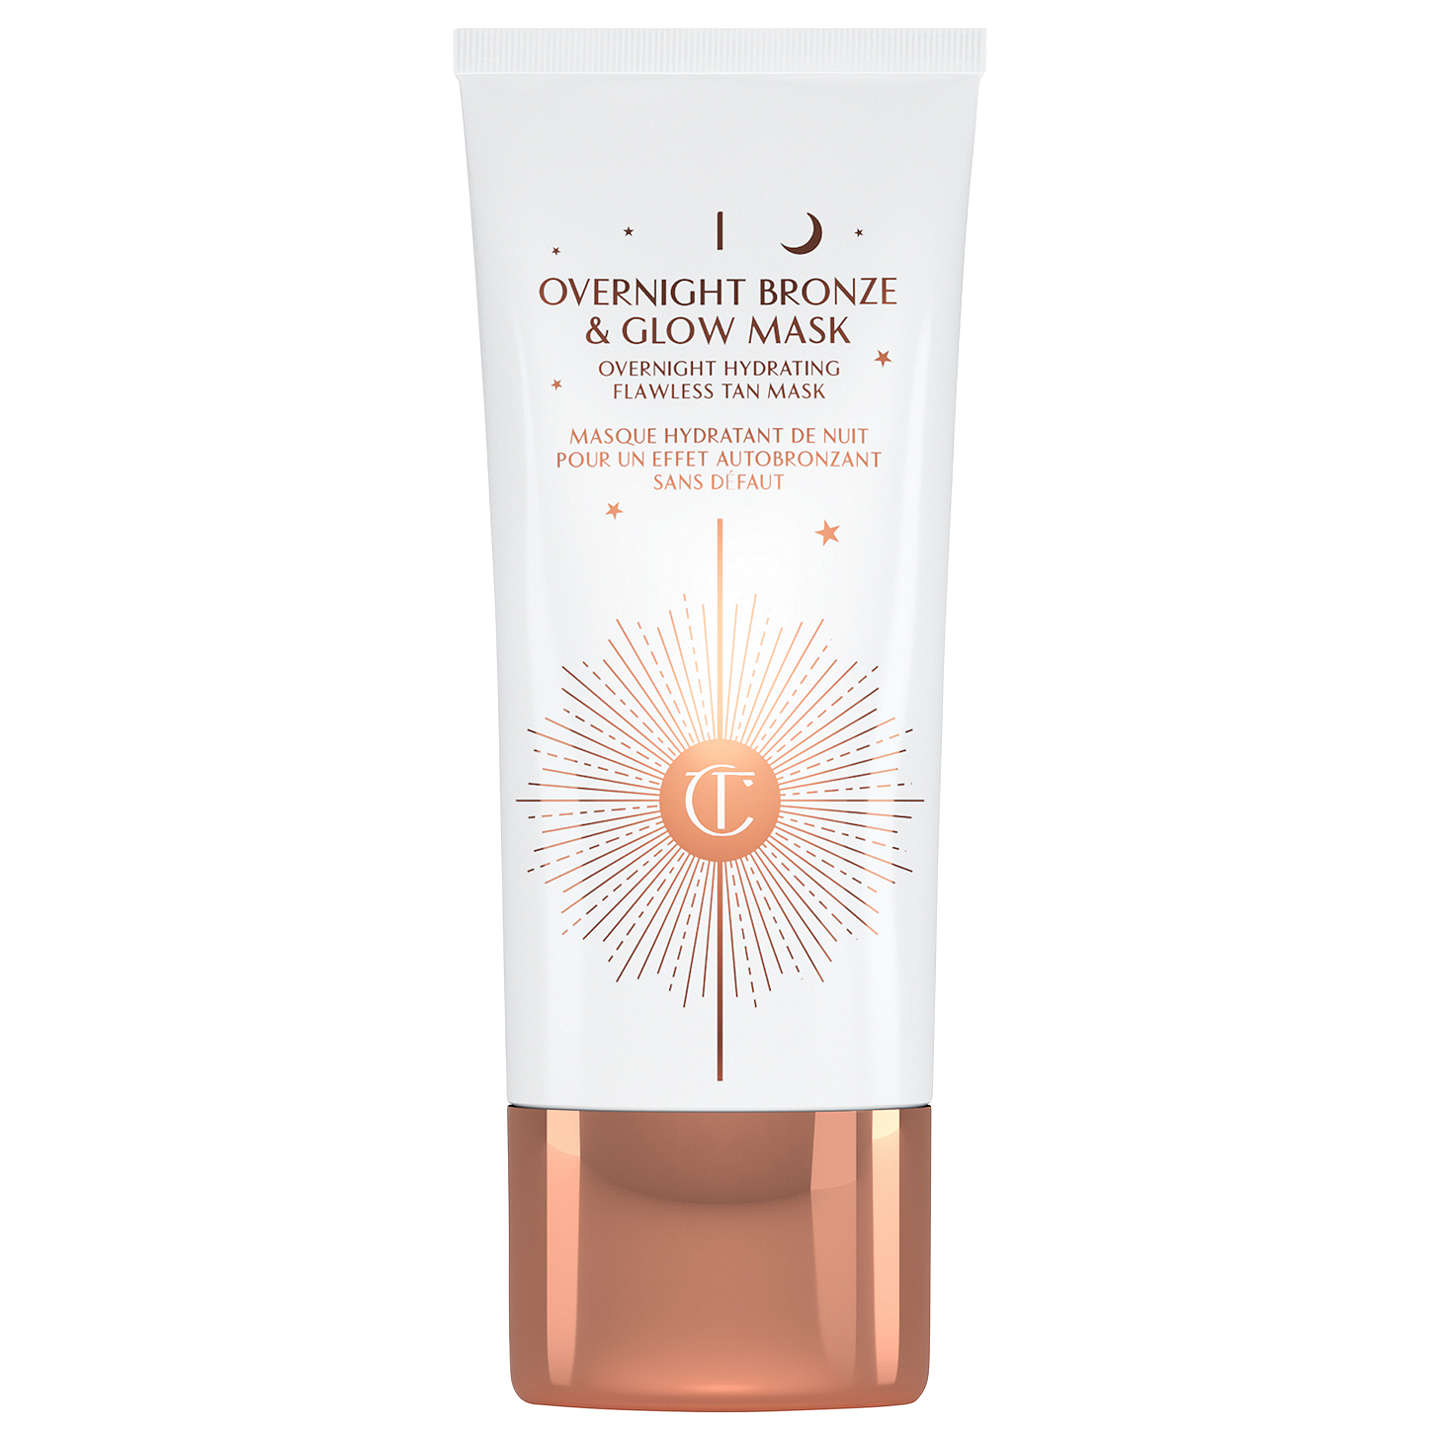 BuyCharlotte Tilbury Overnight Bronze & Glow Mask, 50ml Online at johnlewis.com